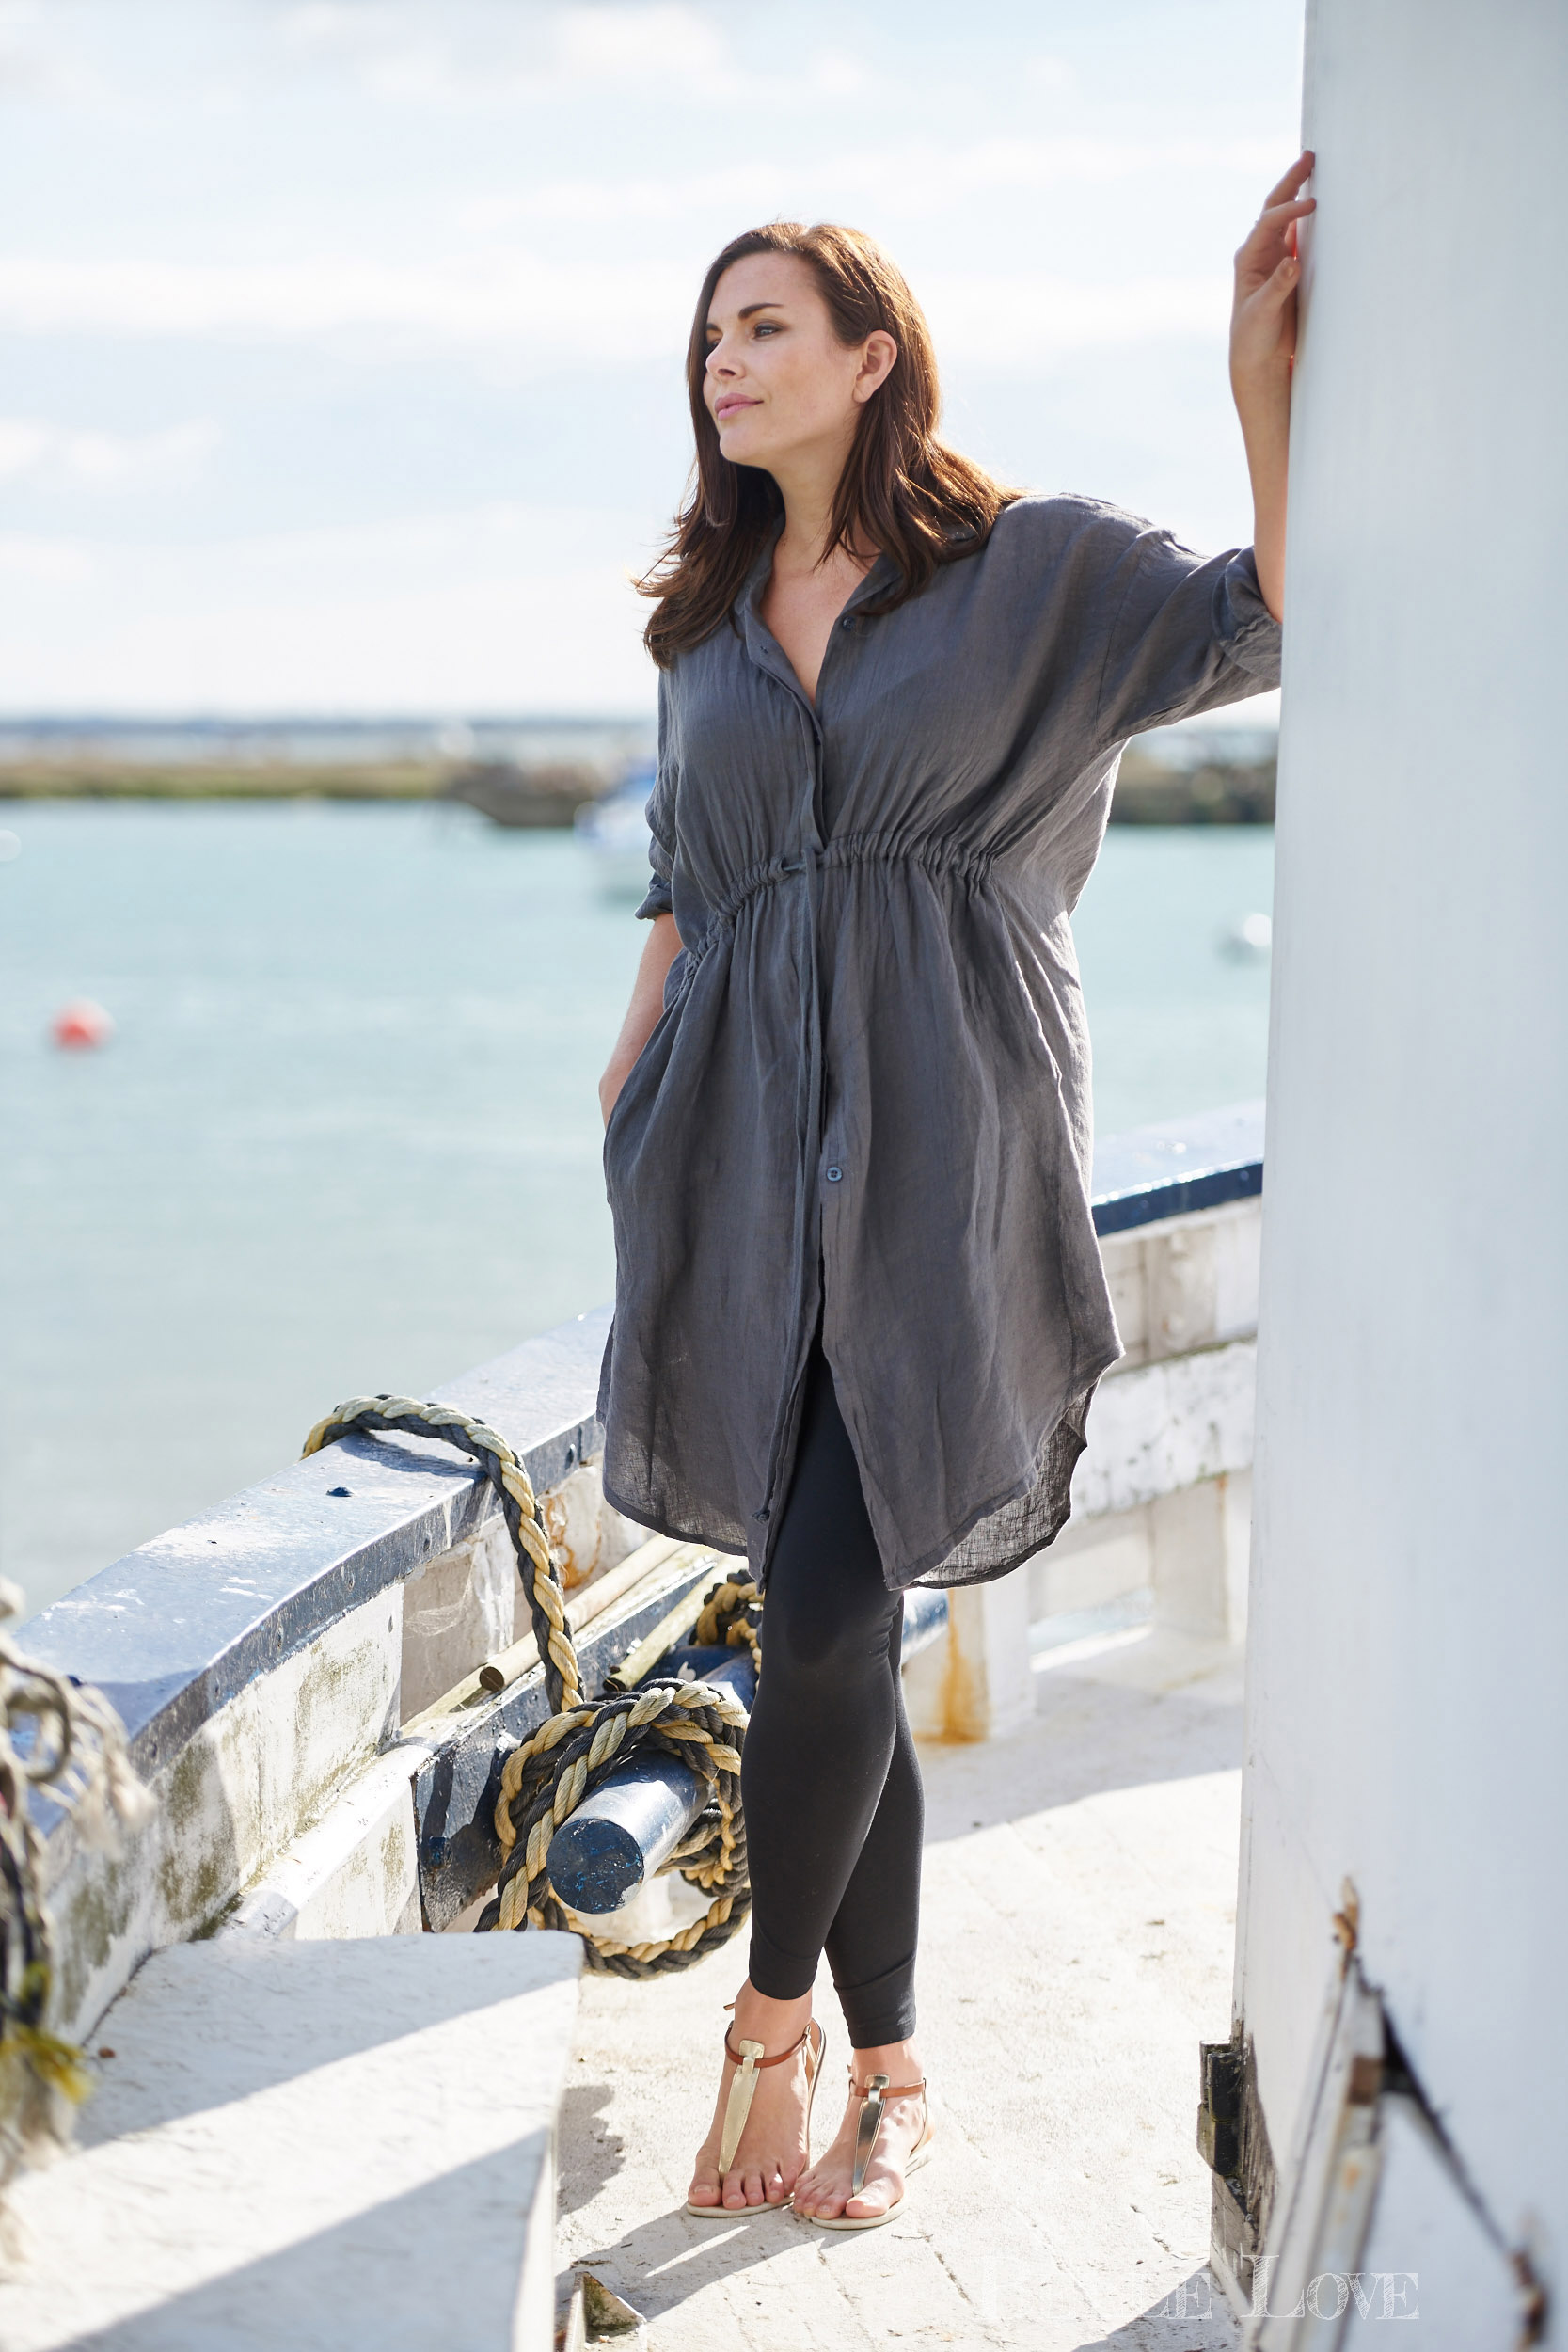 Linen fashion shoot for Belle Love Clothing